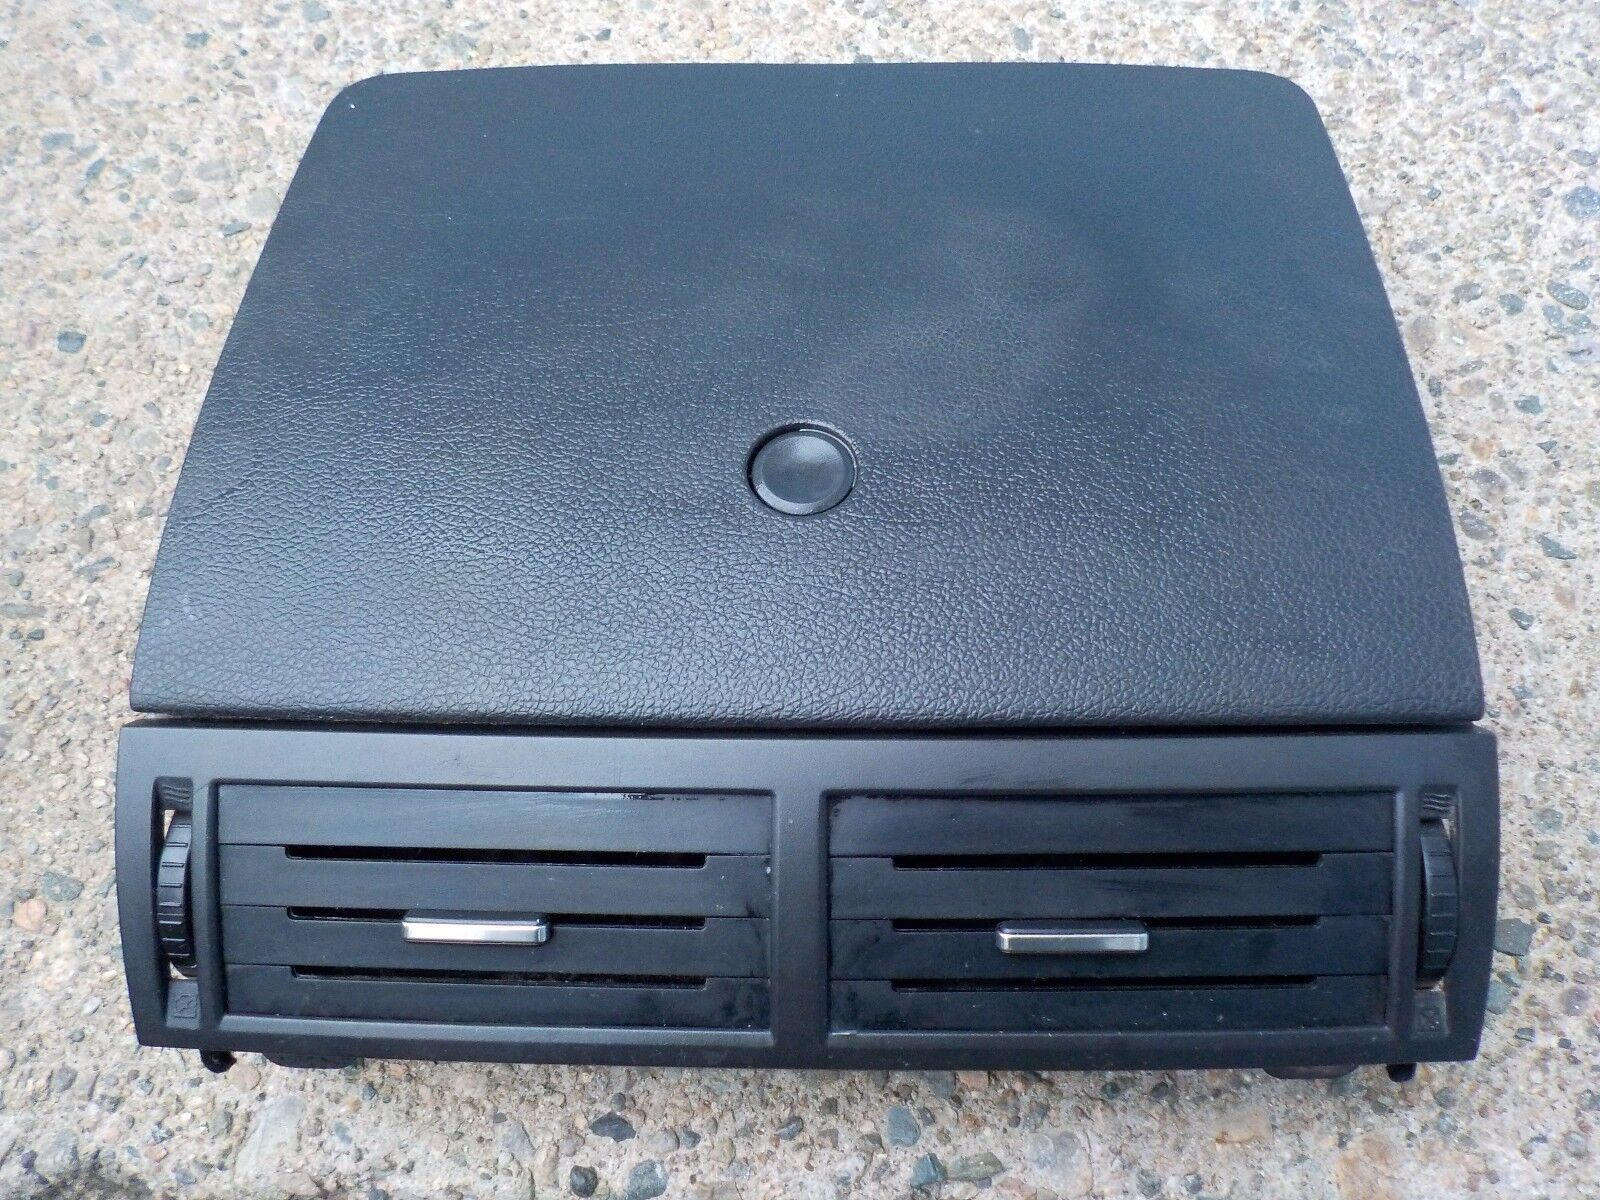 Used Mercury Dash Parts For Sale Page 4 Monarch Fuse Box Location 2006 2009 Ford Fusion Milan Center Console Cubby Storage W Vents